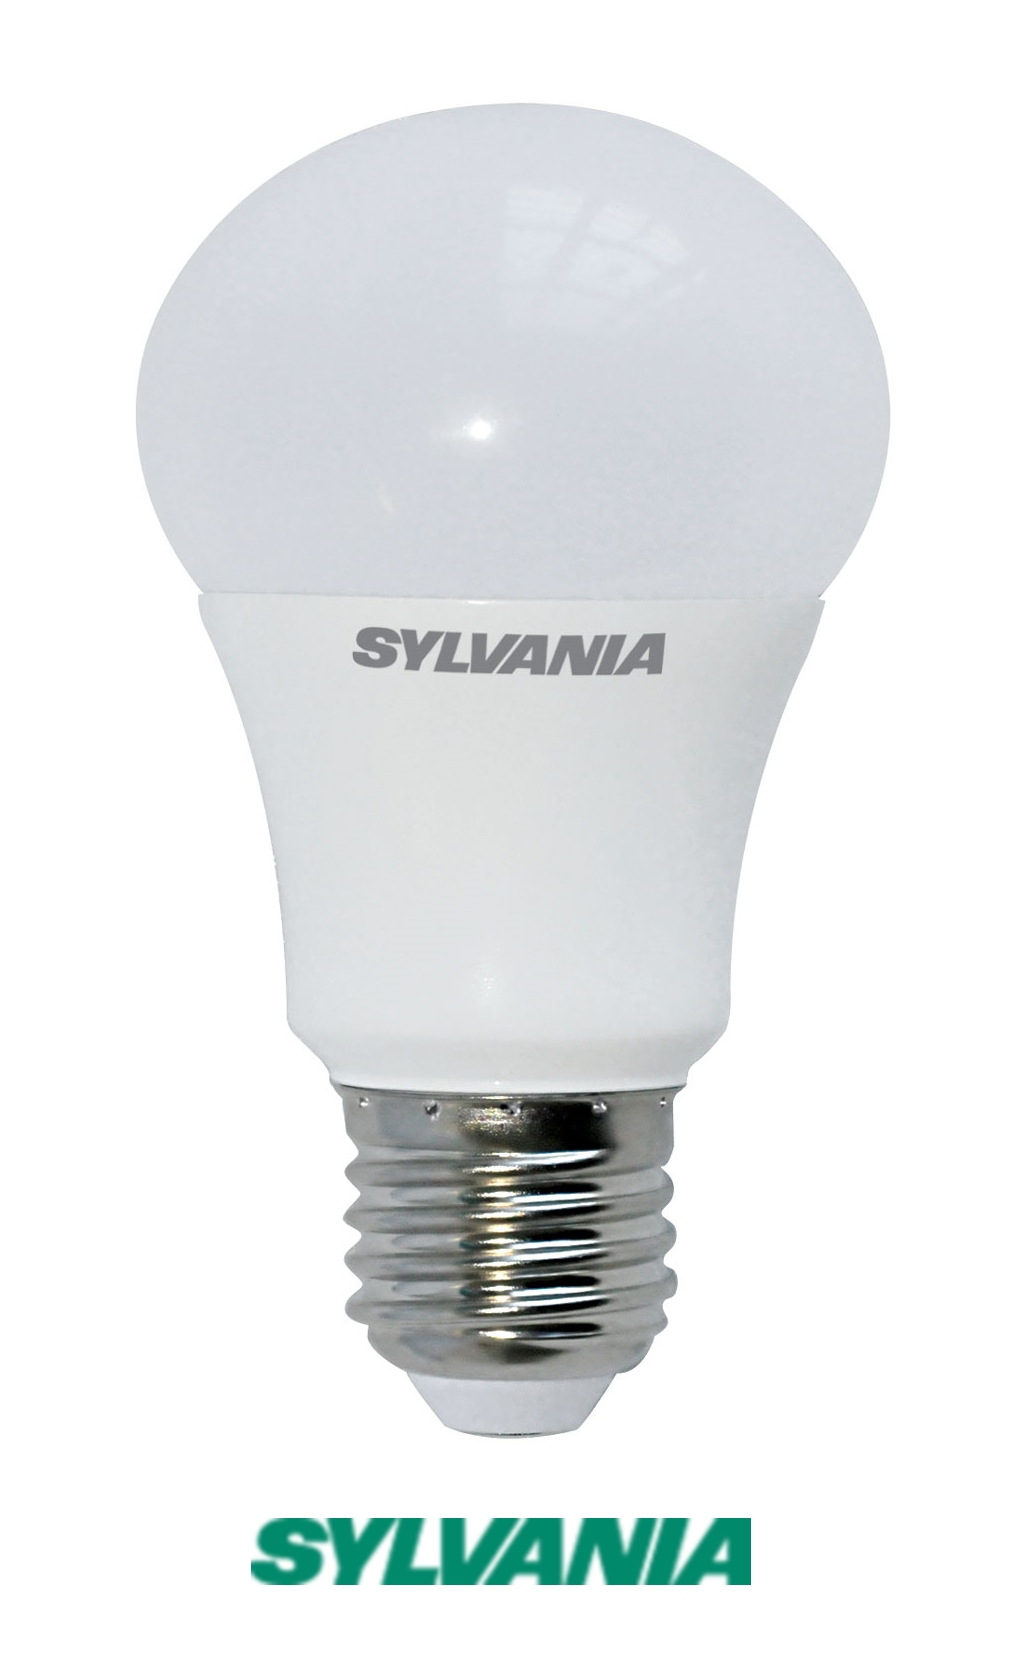 sylvania toledo gls dimmable led bulbs a60 direct retrofit 9 5w 60w es e27 liminaires. Black Bedroom Furniture Sets. Home Design Ideas